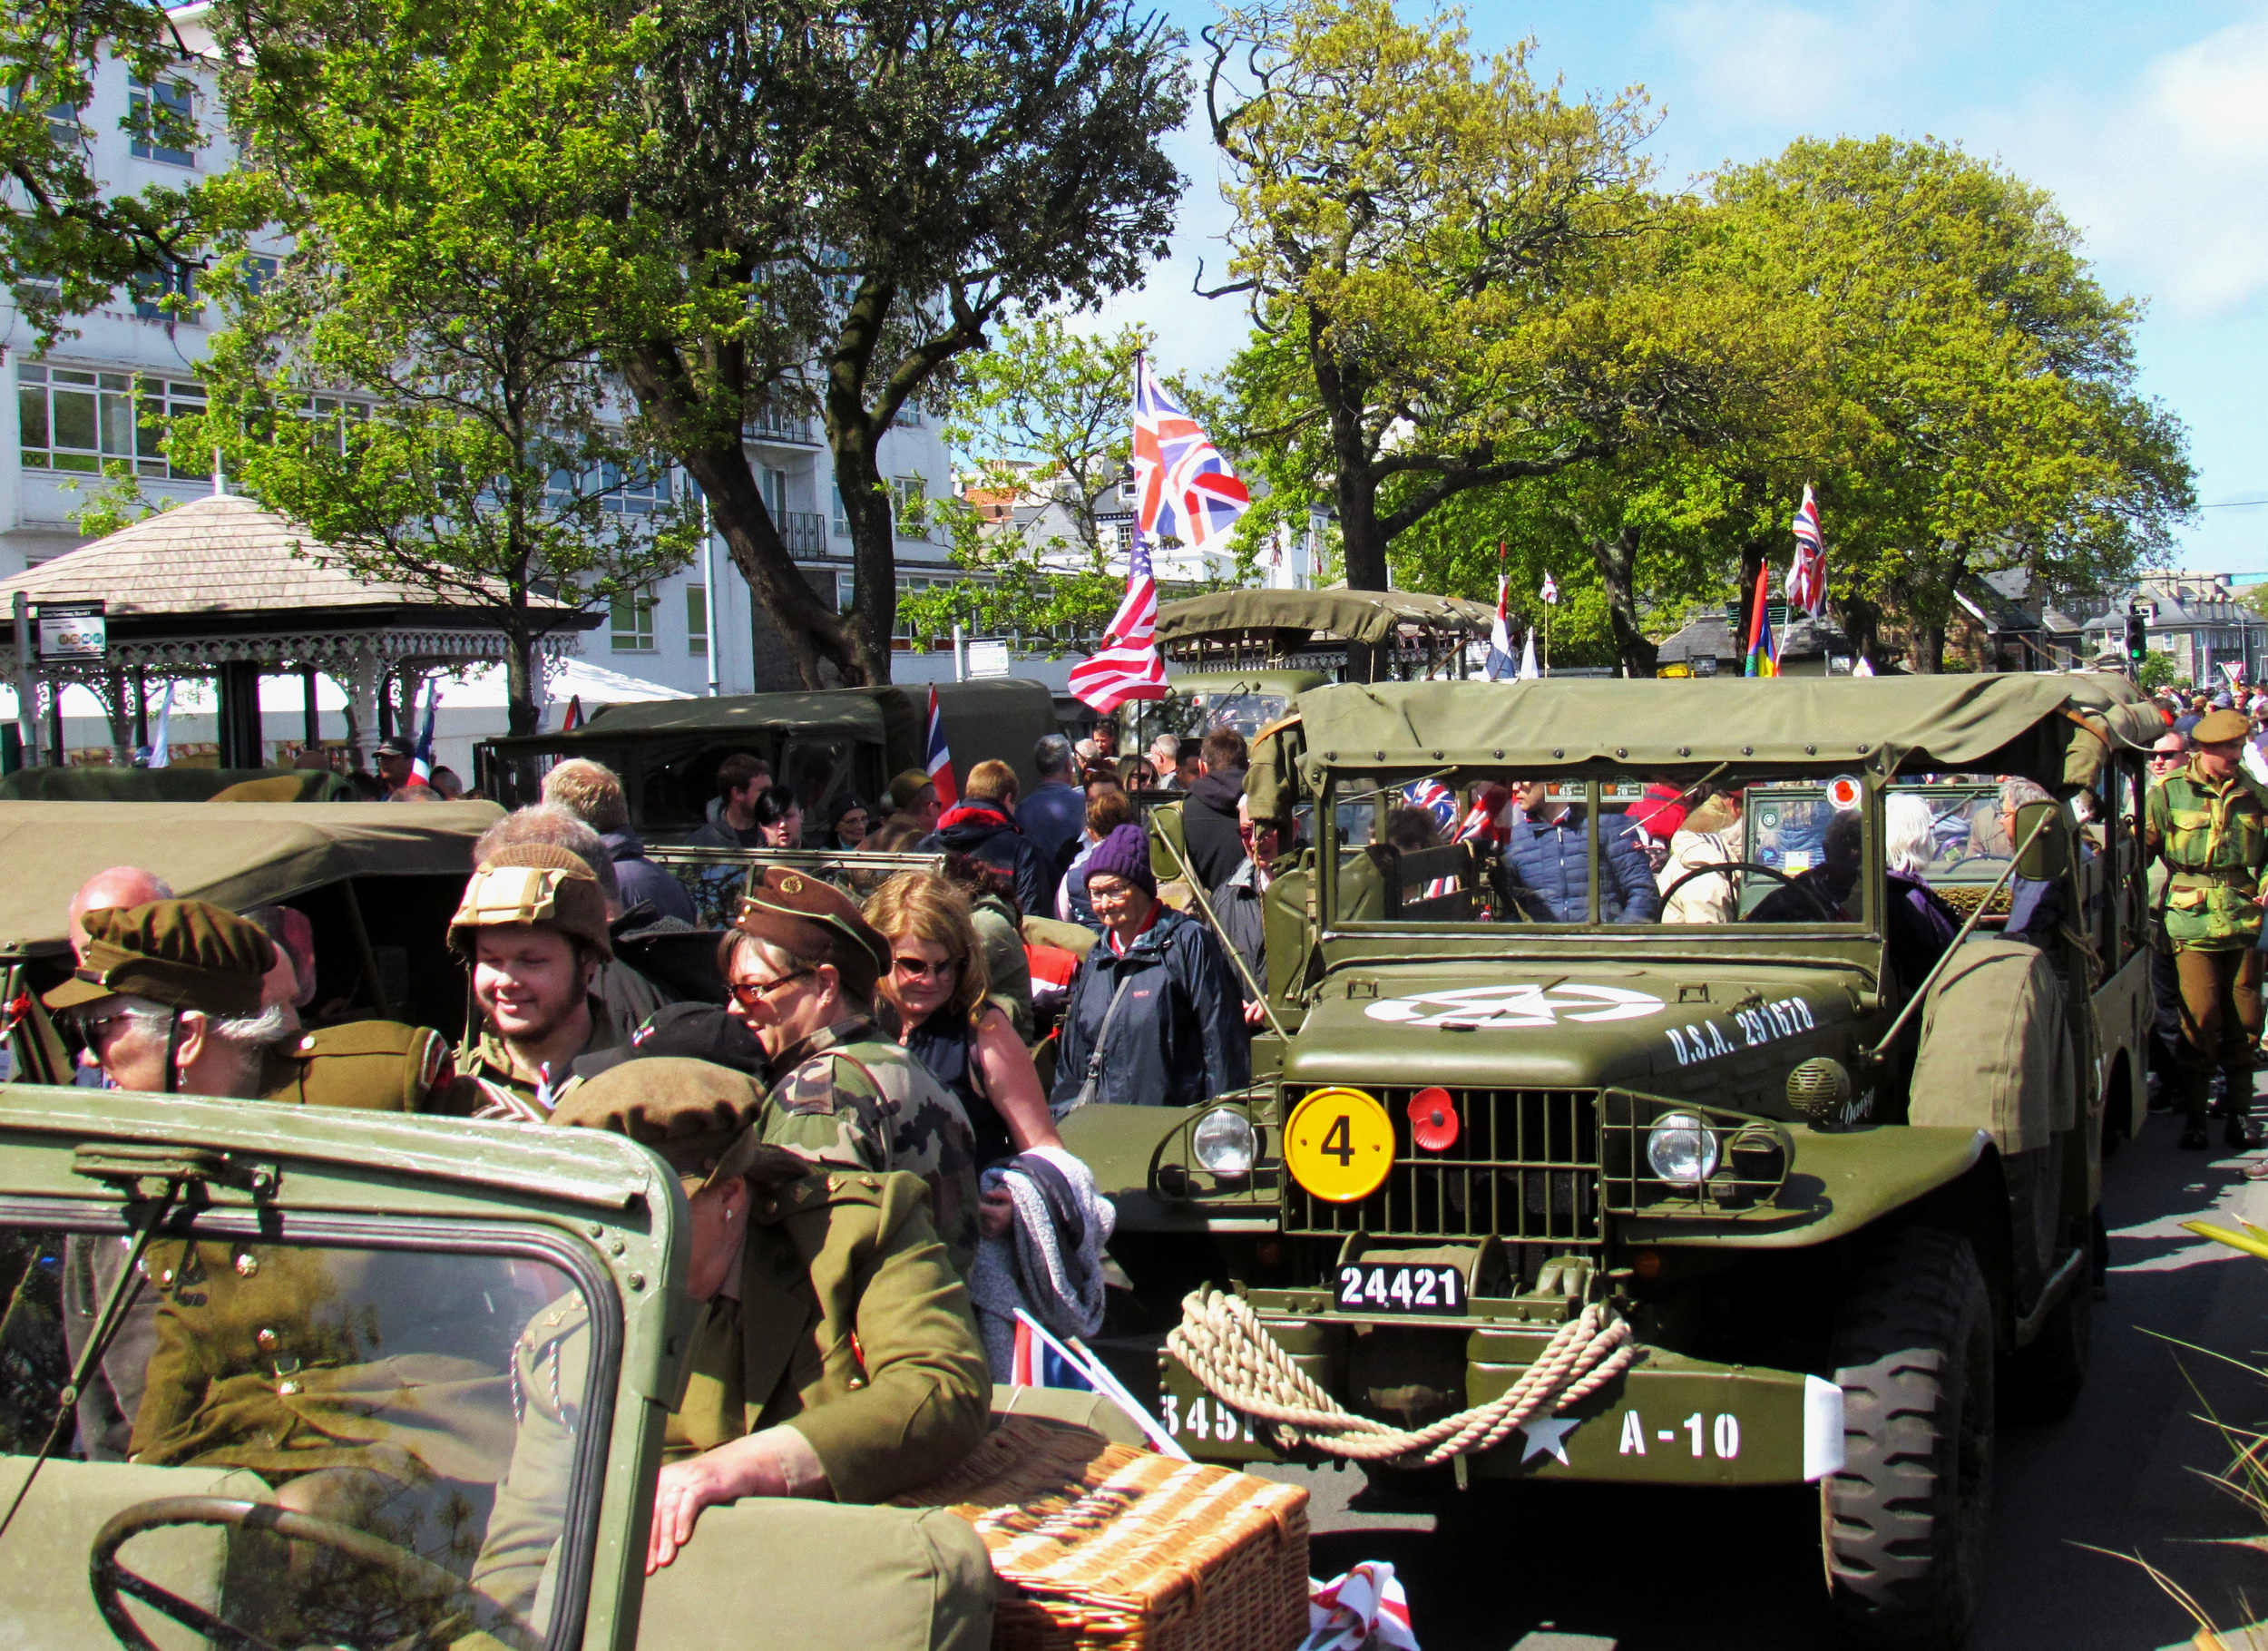 09/05/2019: Liberation Day in Guernsey, Channel Islands